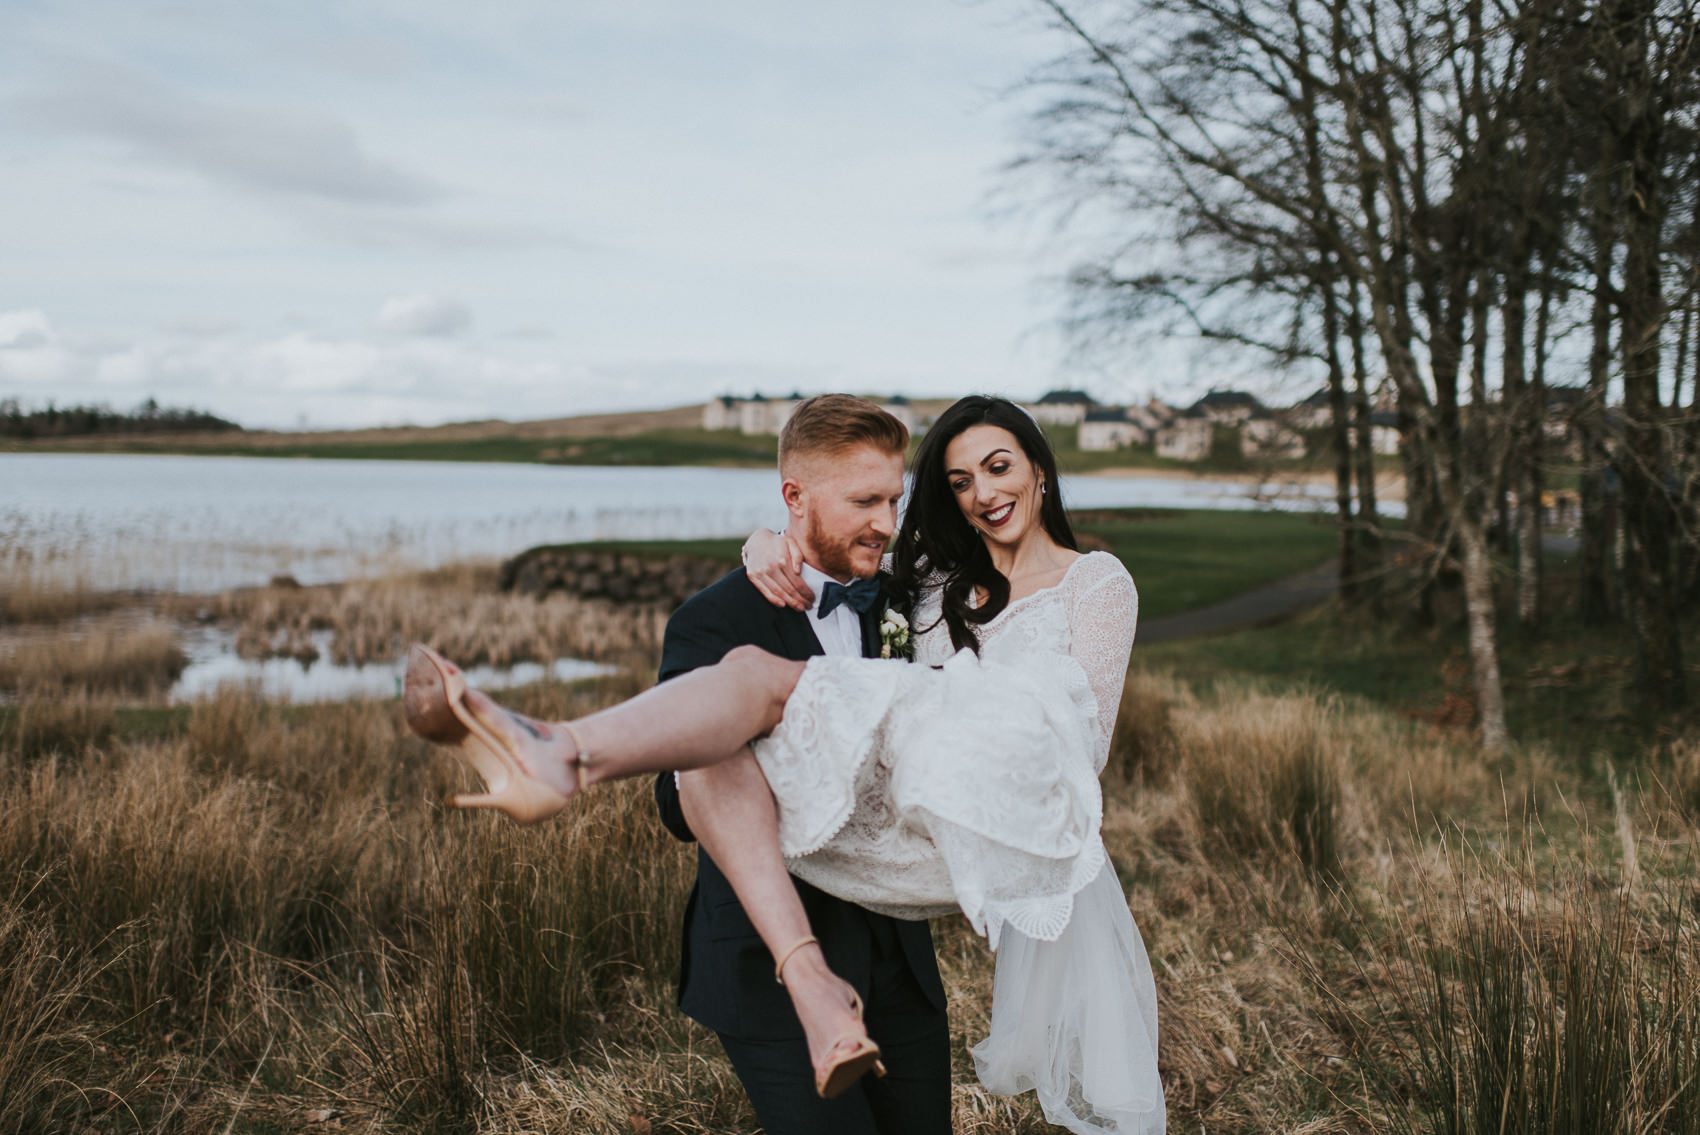 Photography by Ciara - wedding photographer 3